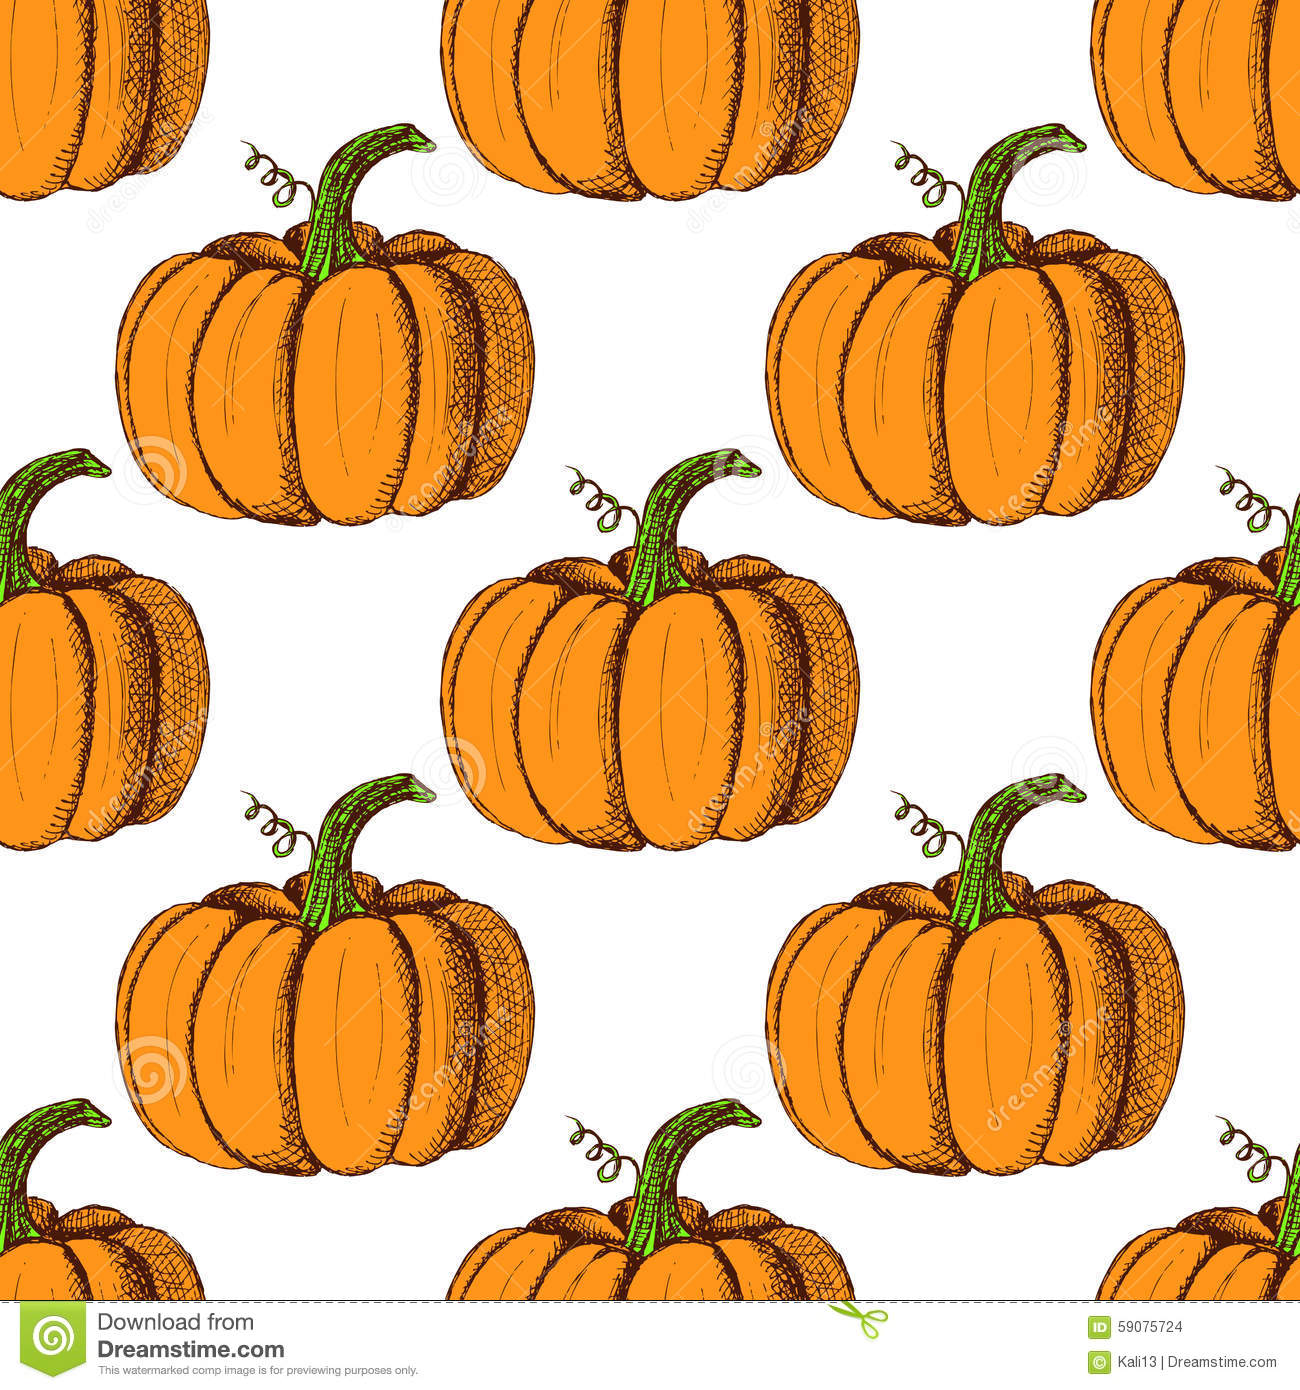 vintage pumpkin clip art - photo #34